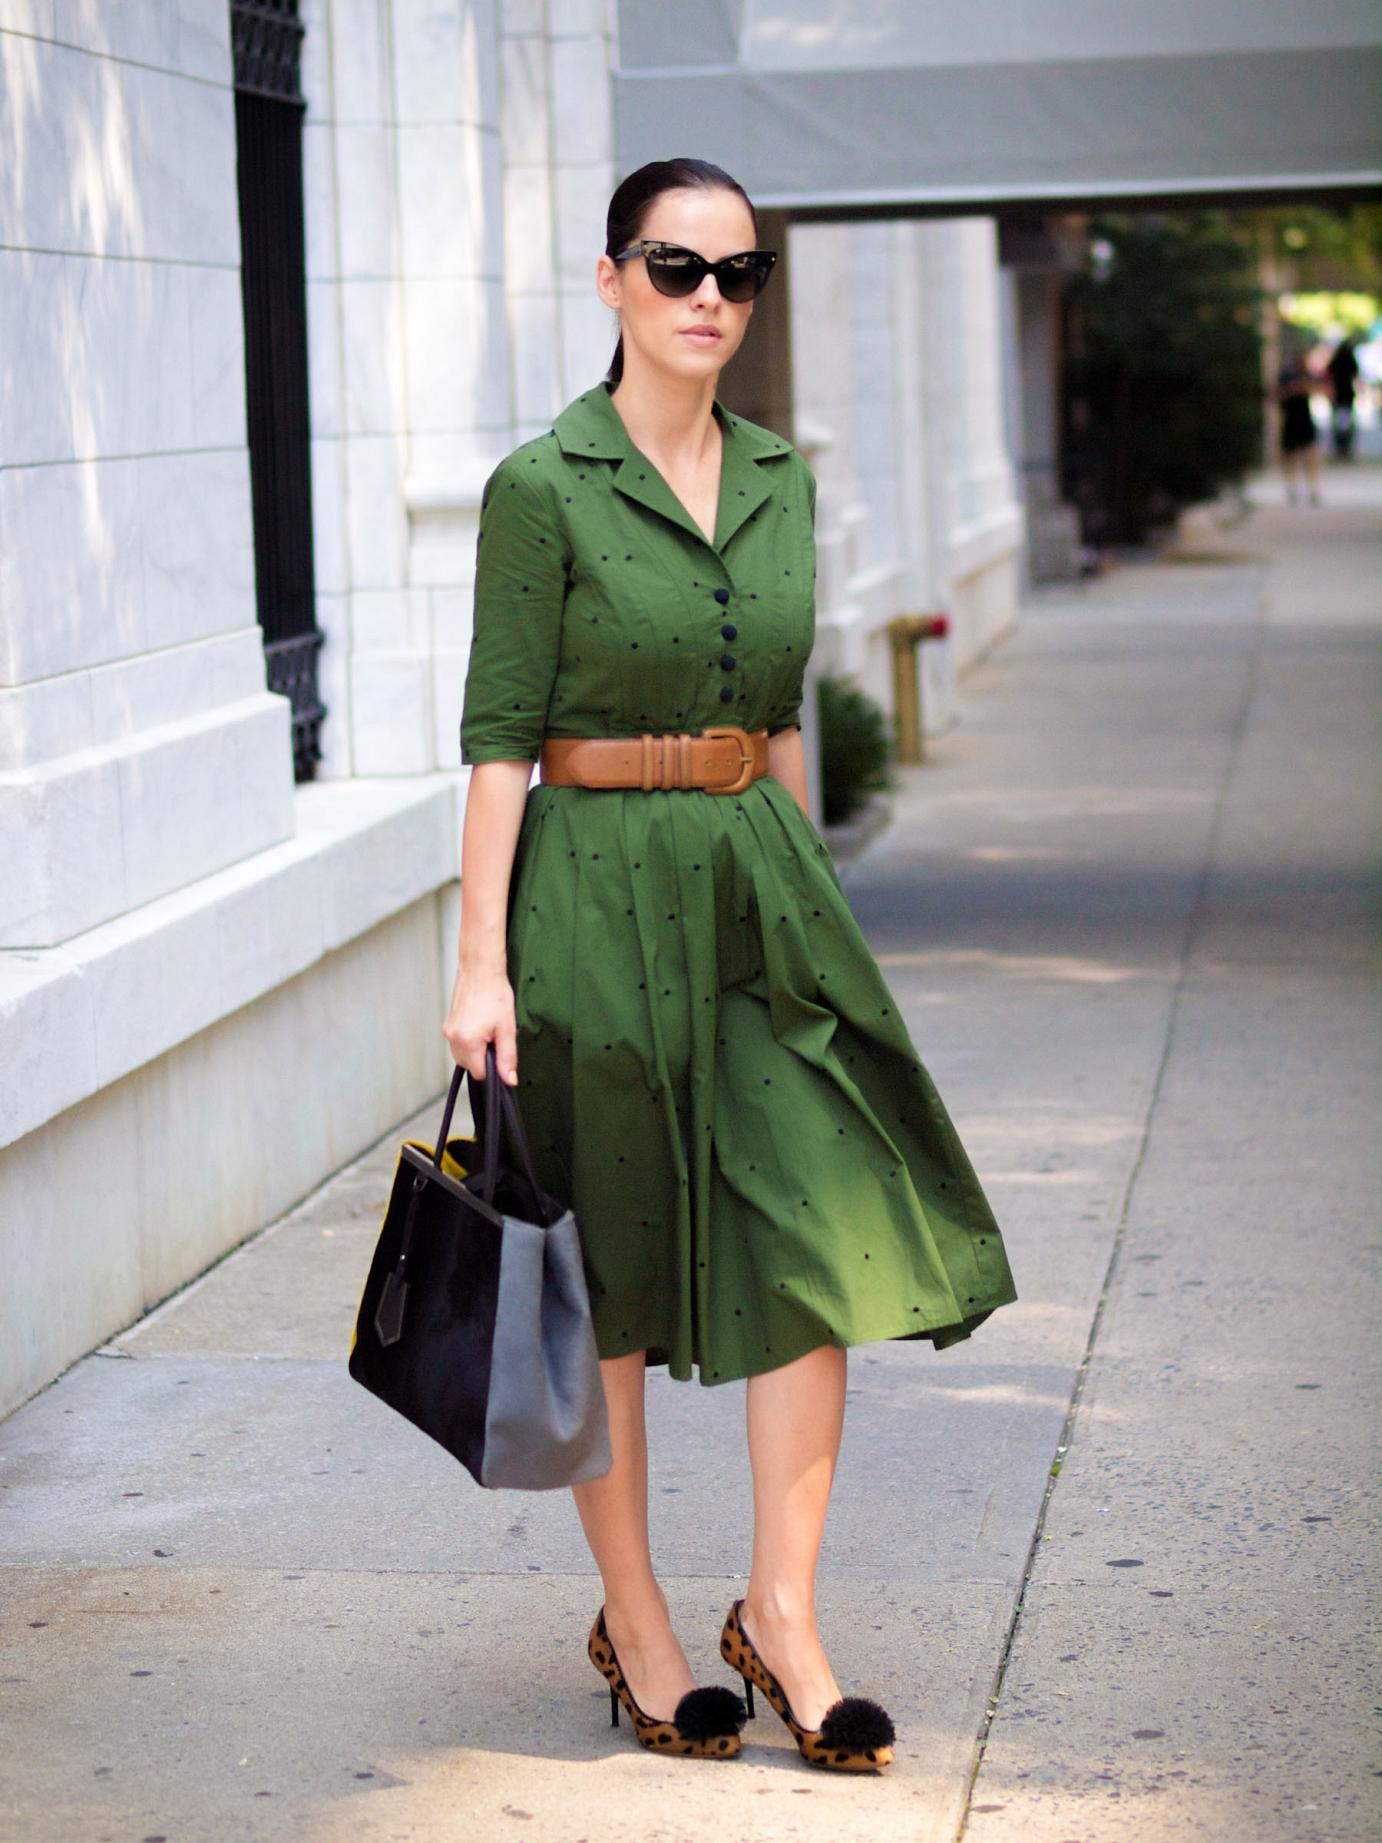 bittersweet colours, nyfw, nyfw street style, street style, fashion week, New York, green dress, charlotte olympia shoes, animal print shoes, 2jours bicolor fendi bag, fendi bag, christian dior sunglasses, eye cat sunglasses, fall colors, fall trends